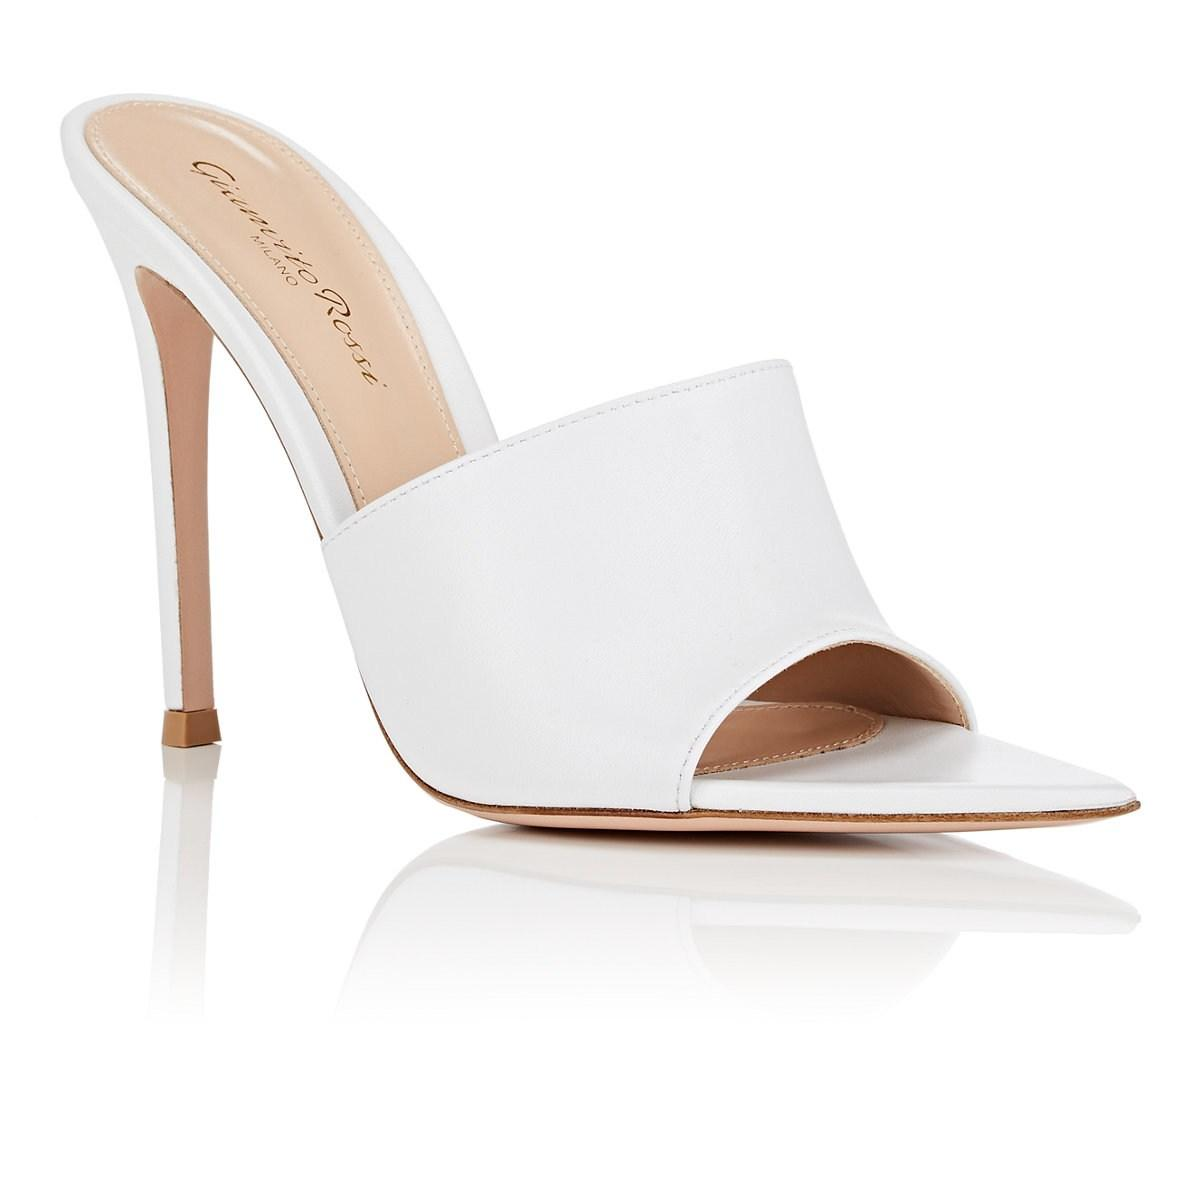 97b4e271bb2 Gianvito Rossi - White Alise Leather Mules - Lyst. View fullscreen